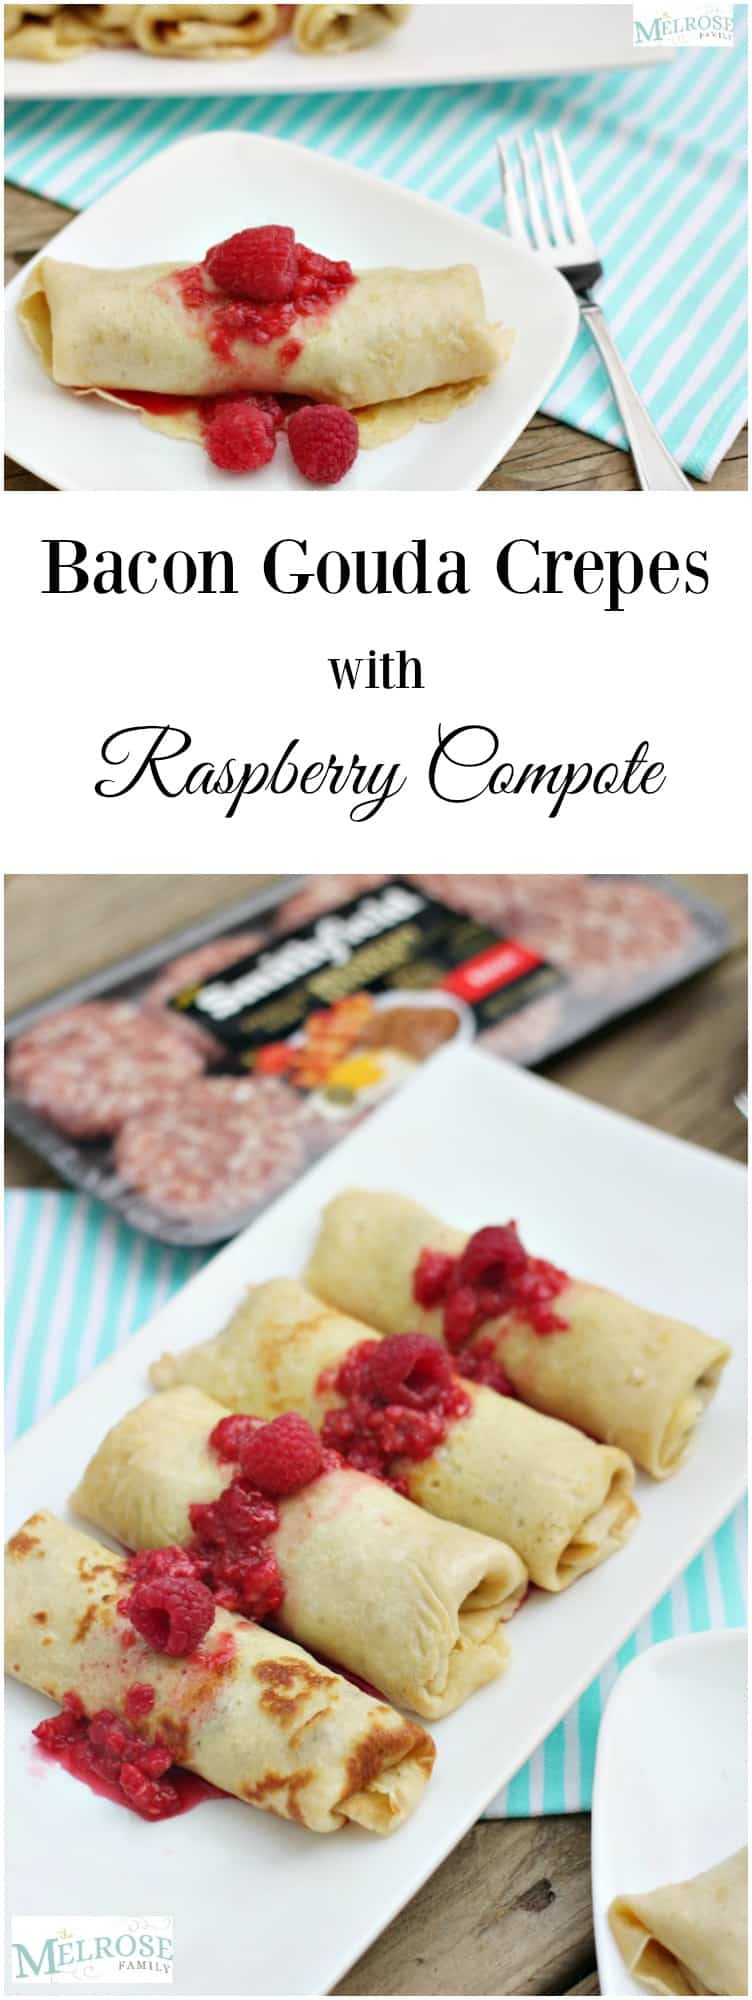 Bacon Gouda Crepes with Raspberry Compote ad SmithfieldBrunch